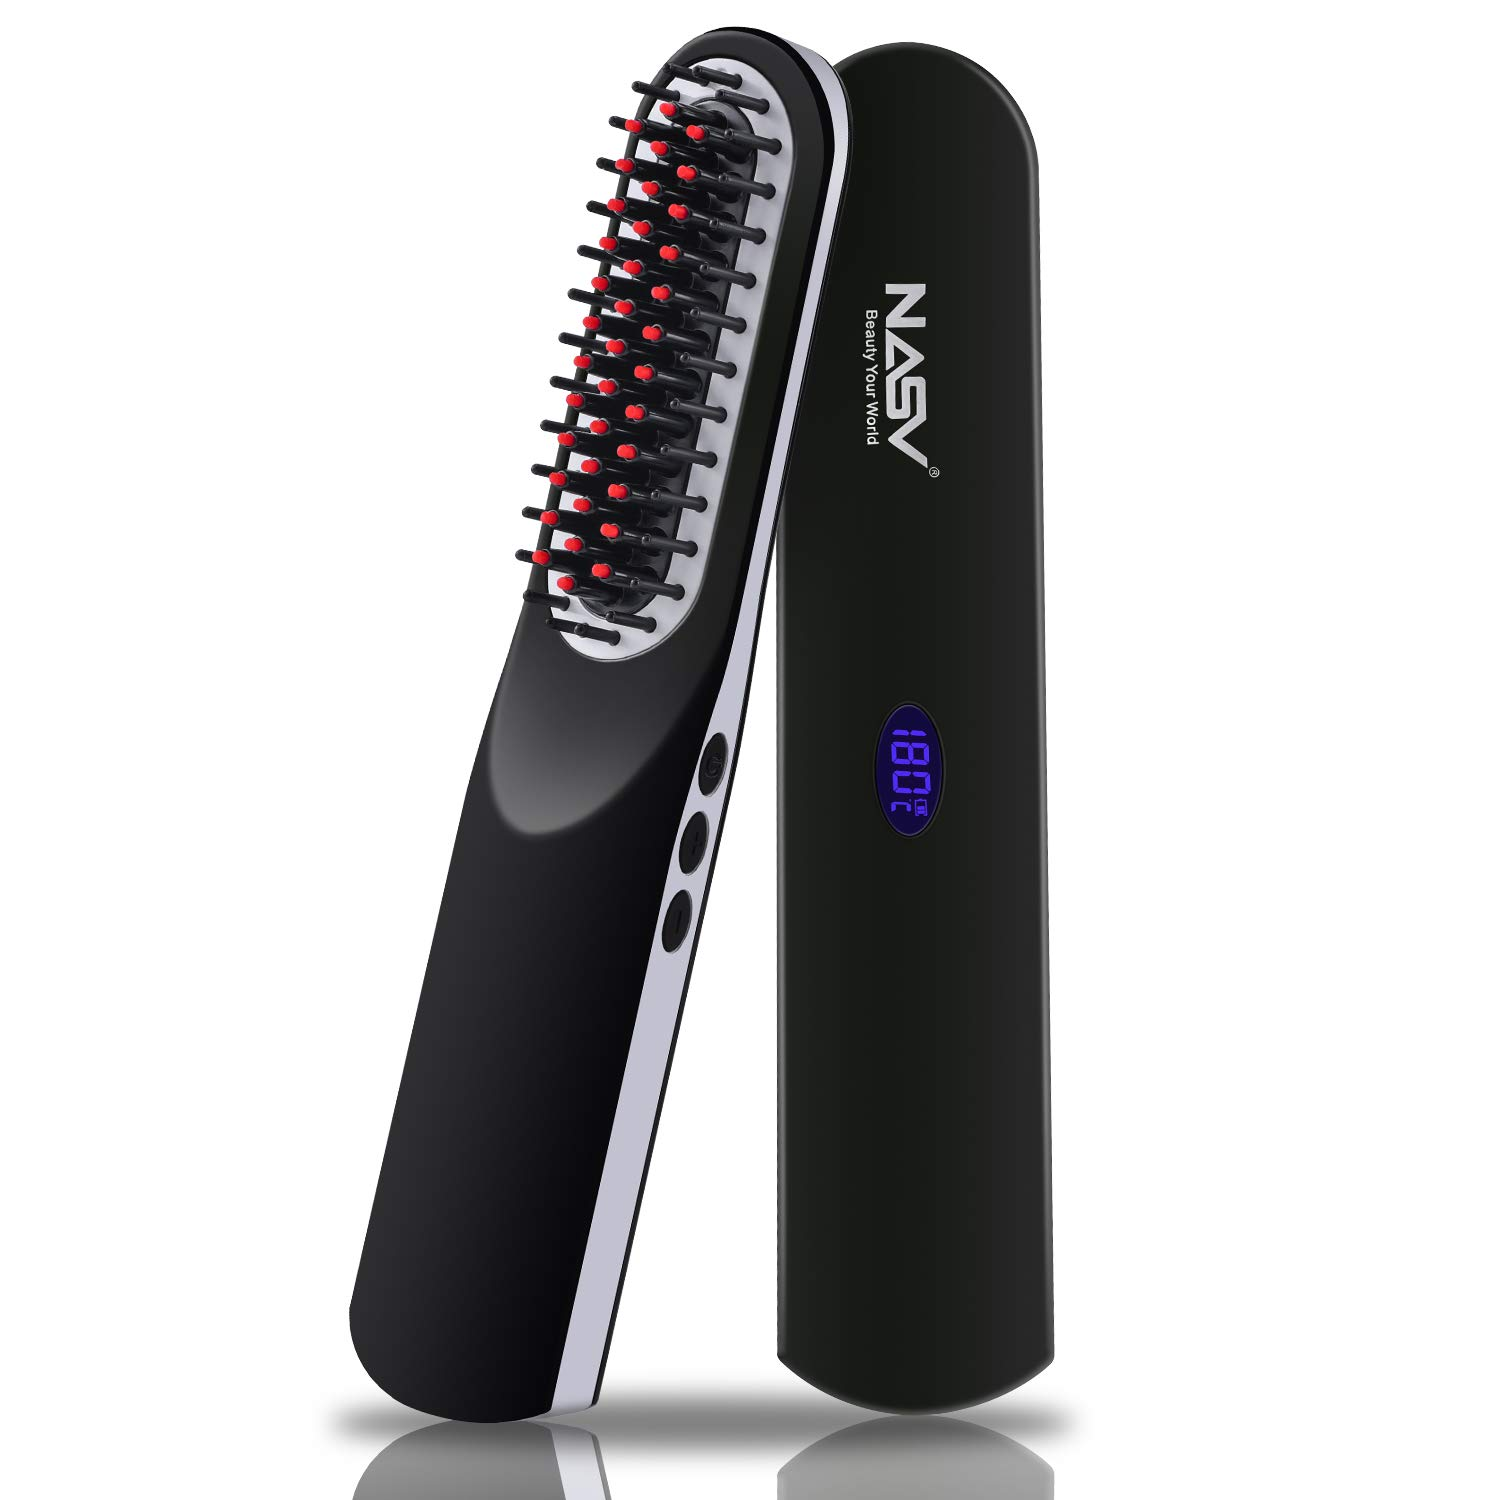 Beard Straightener for Men, Hot Air Brush 2-in-1 One Step Hair Dryer Beard Straightening Comb for Men, Ceramic Heating LCD Display Adjustable Temperatures, Portable Straight Heated Comb